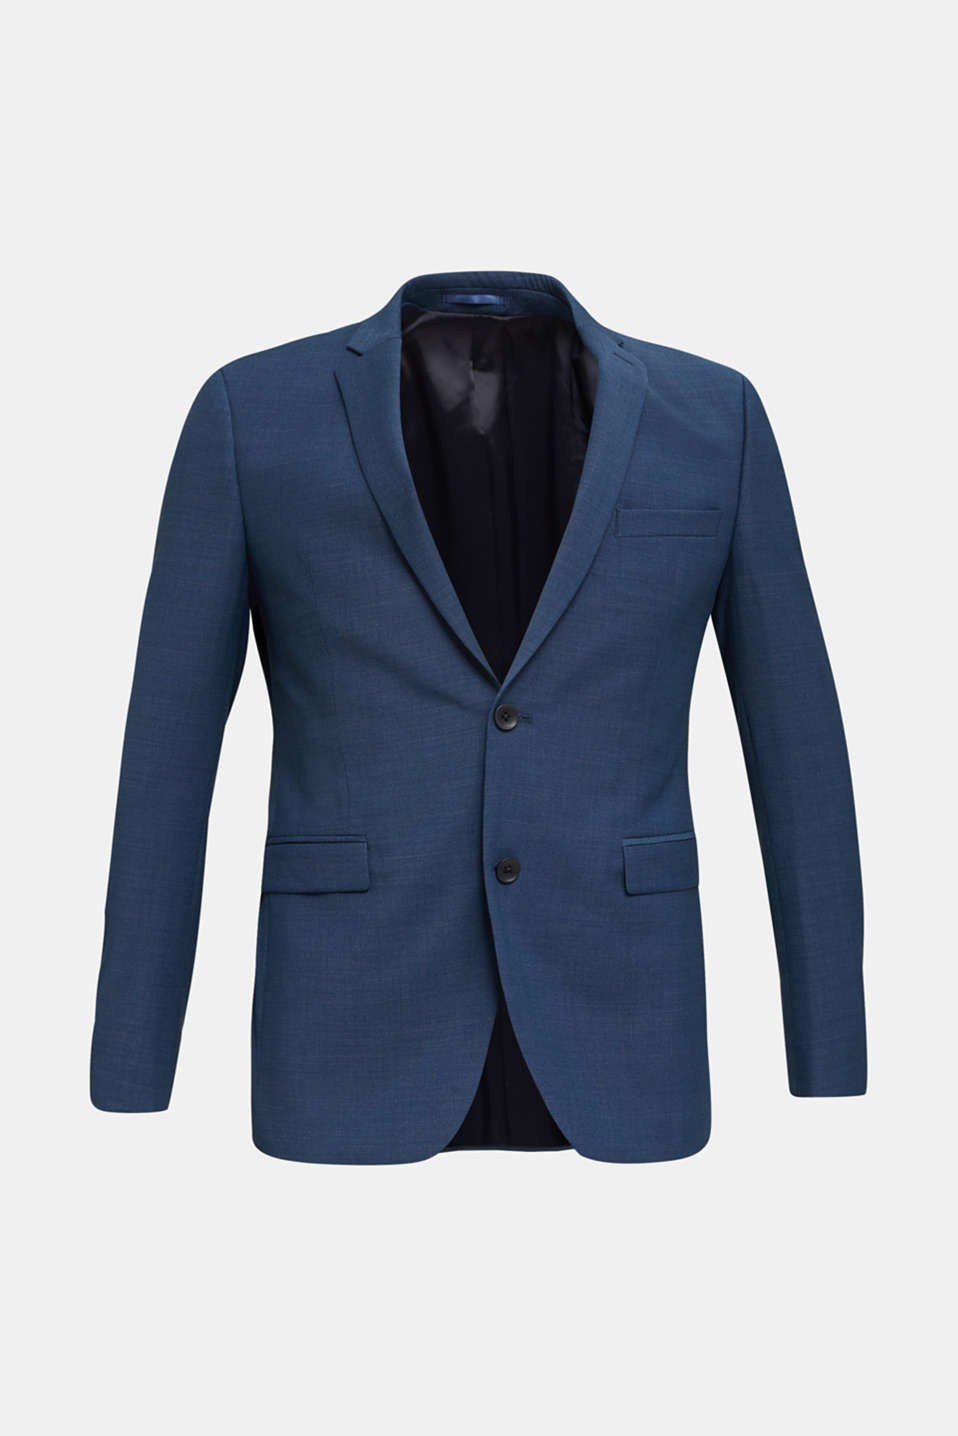 BLUE WOOL mix + match: sports jacket, BLUE 5, detail image number 7